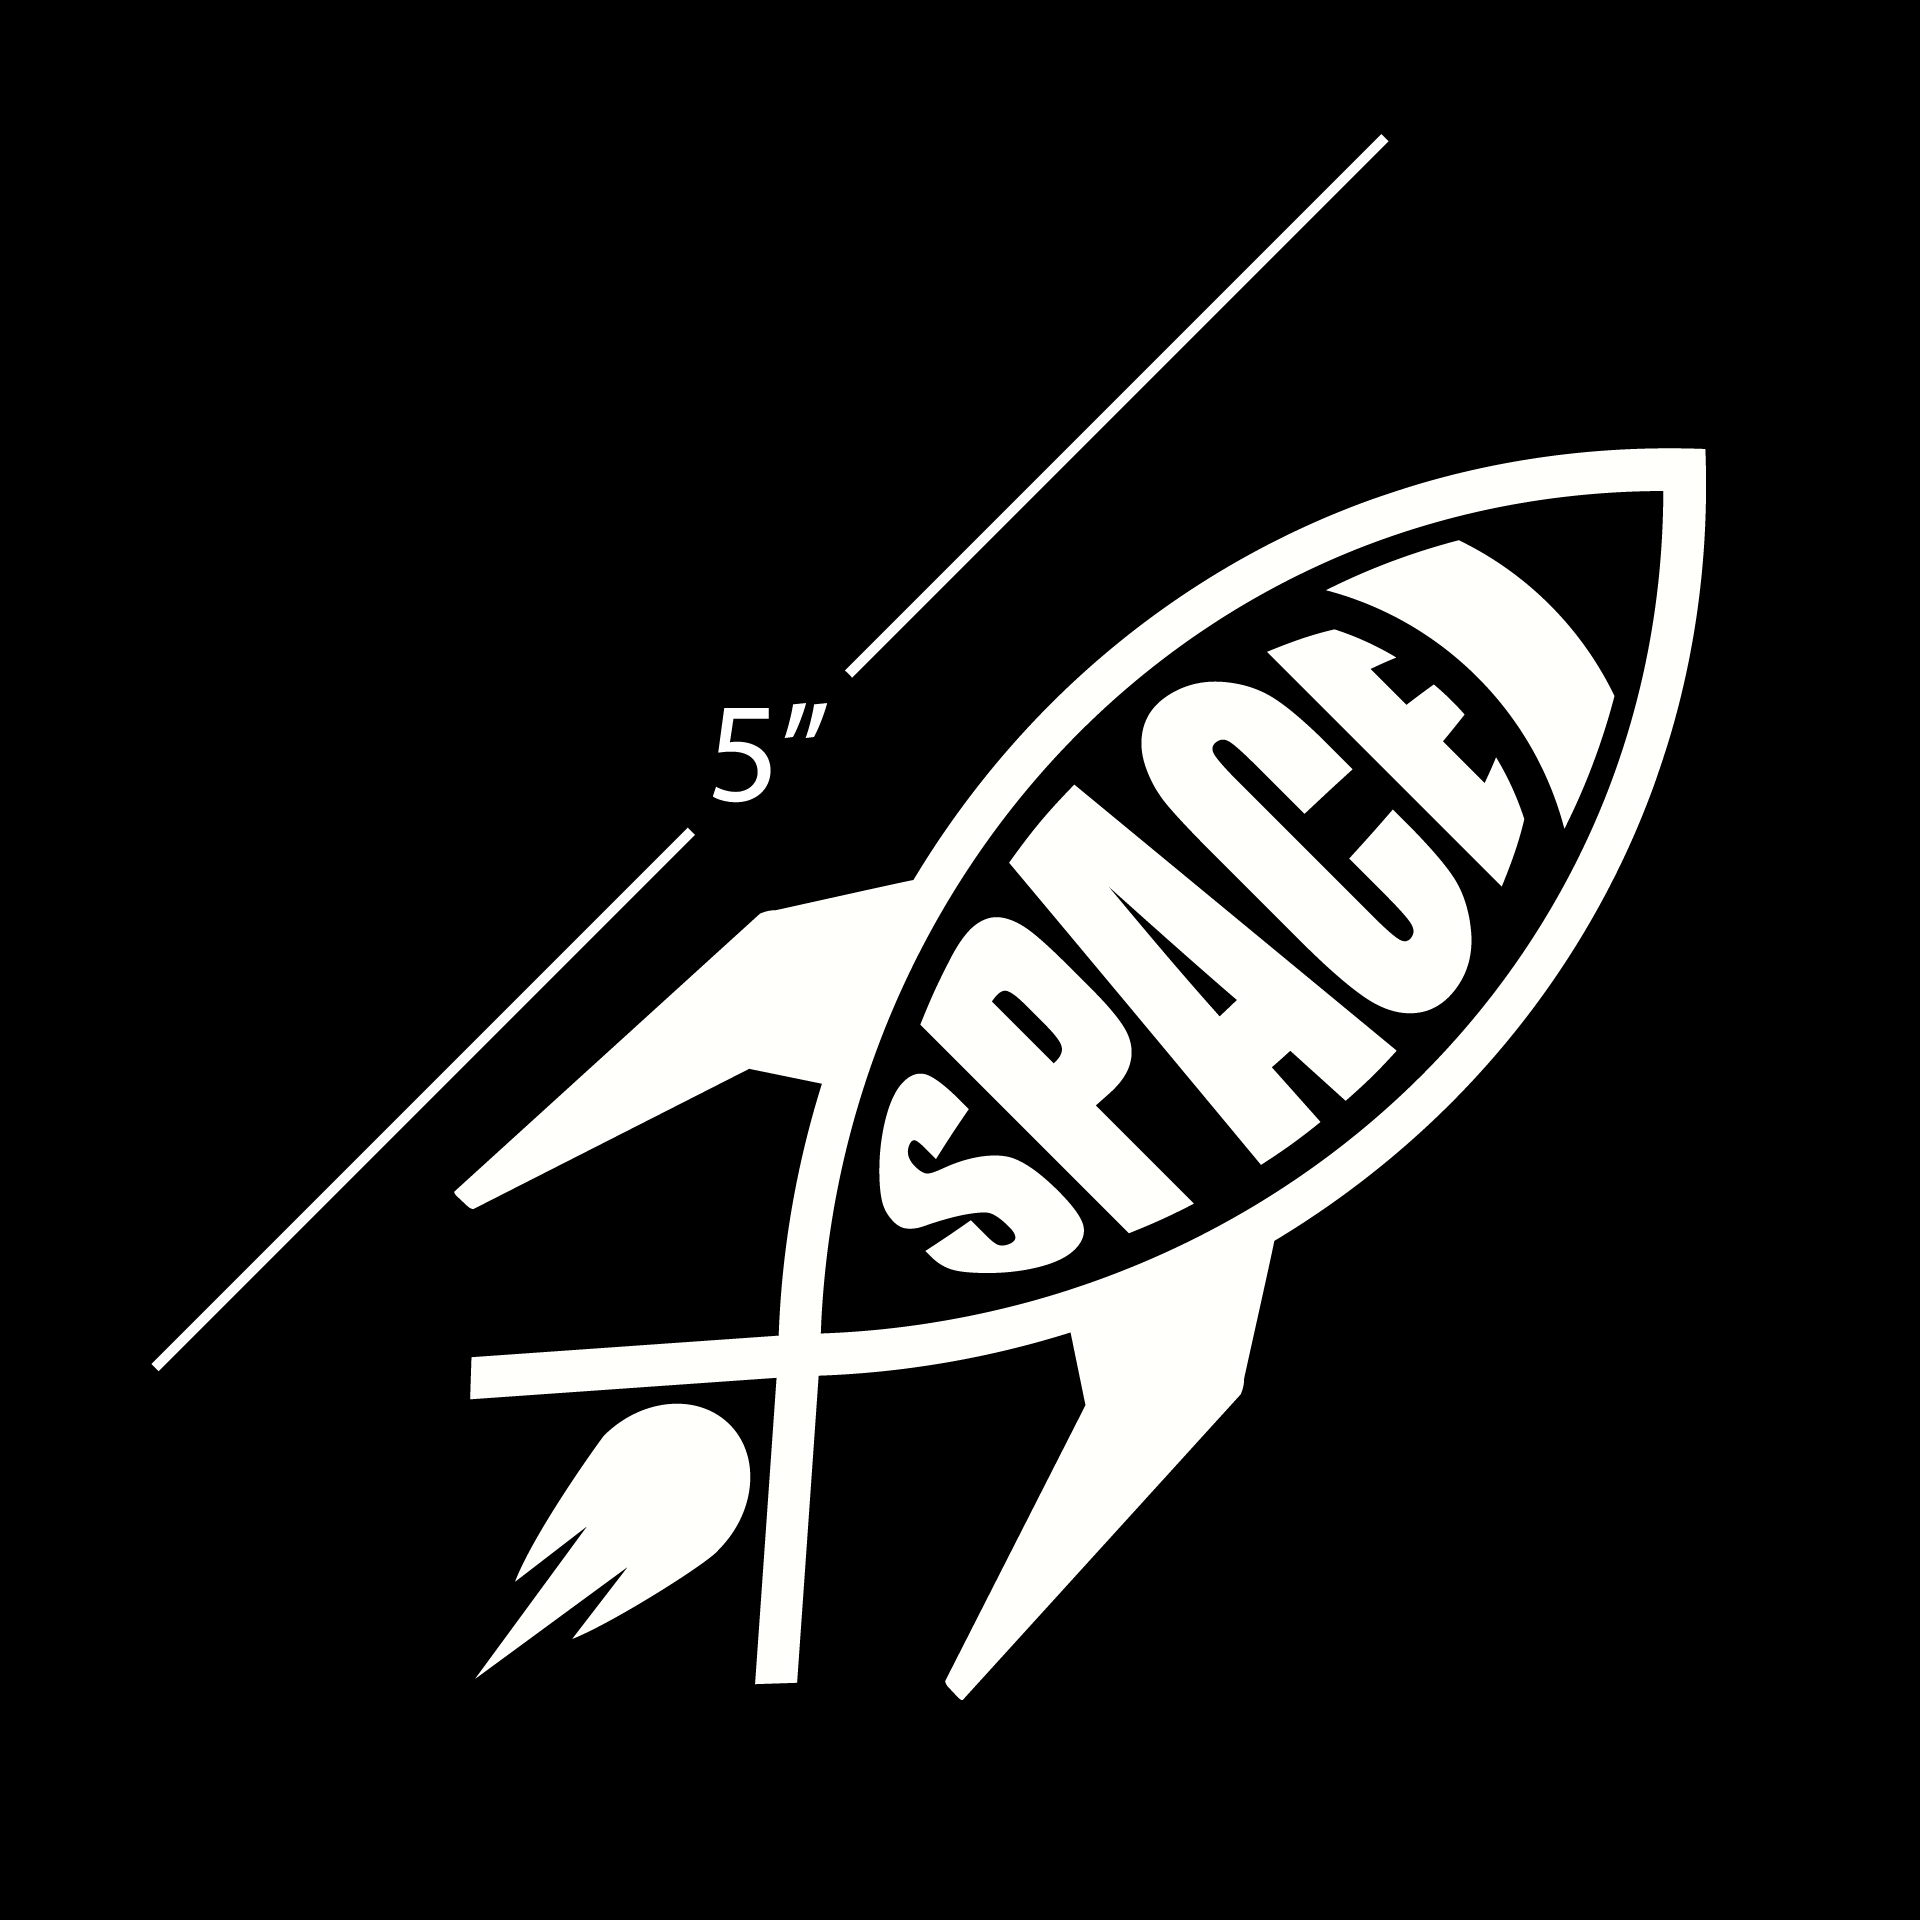 Space Rocket Vinyl Decal